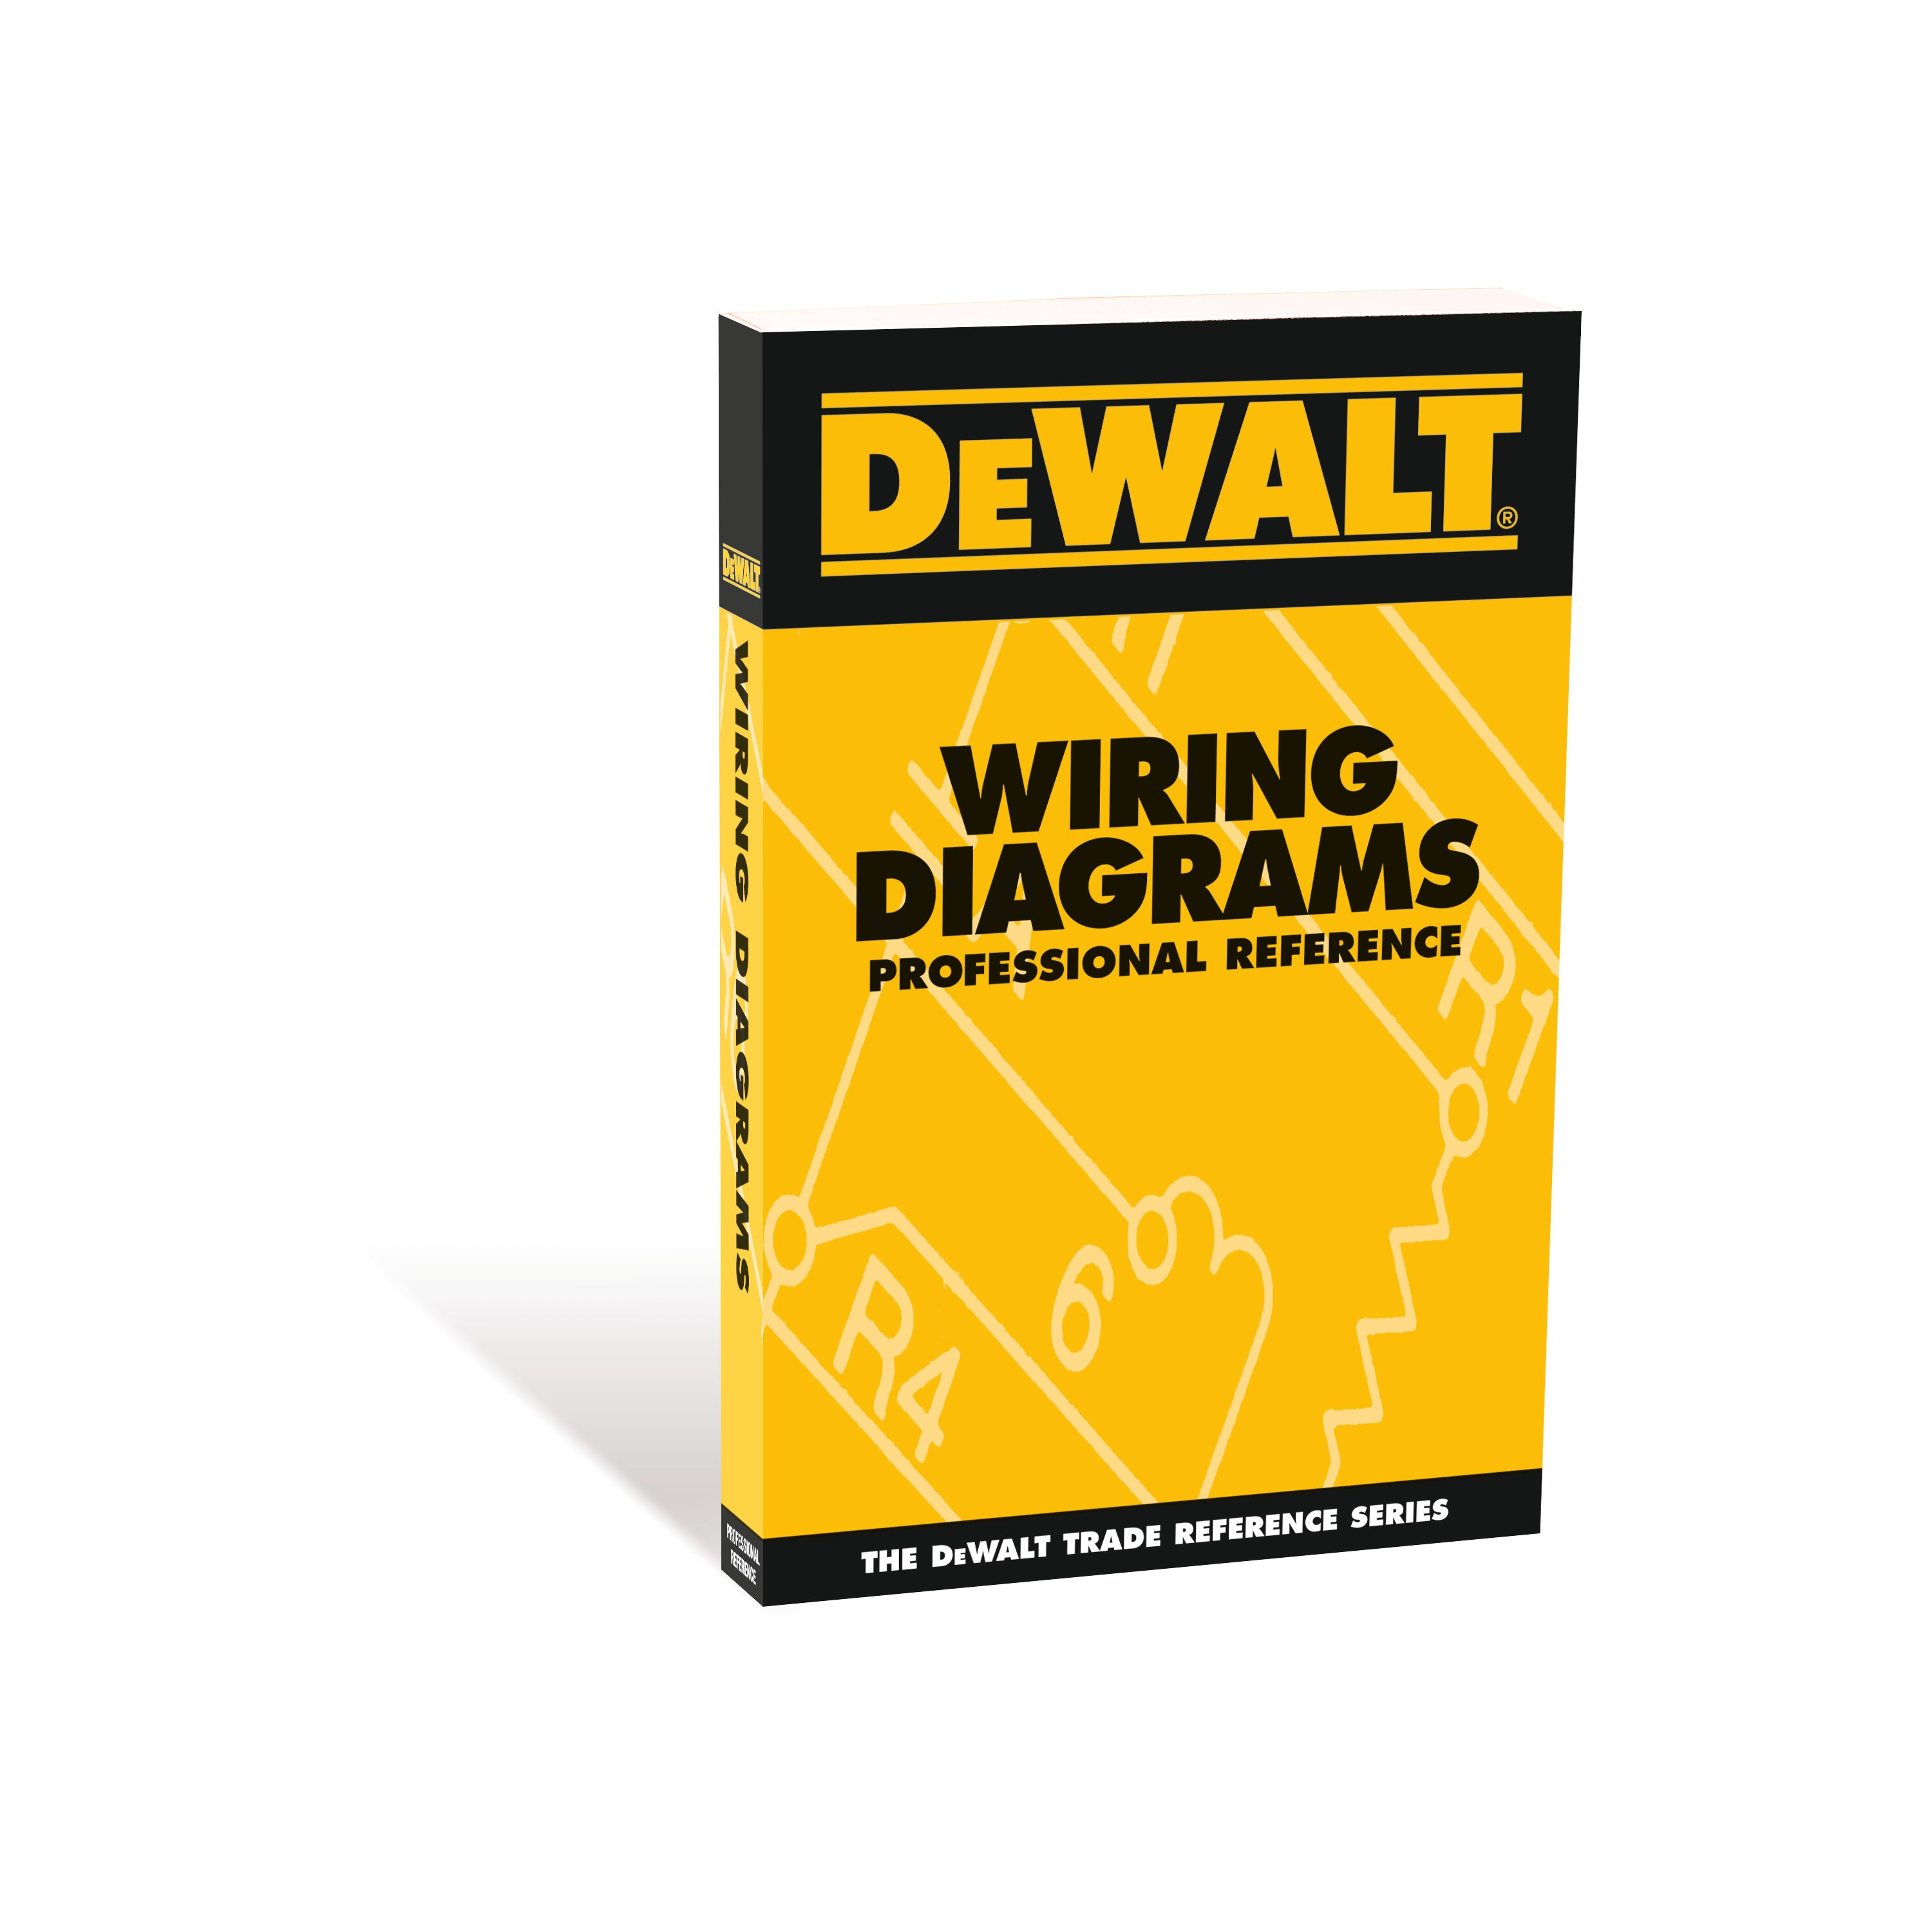 Wiring Diagrams Professional Reference - DXRG51097 | DEWALT on drill safety, drill press diagram, drill accessories, drill guide, drill battery, drill switch diagram, drill parts, drill pump diagram, drill motor,